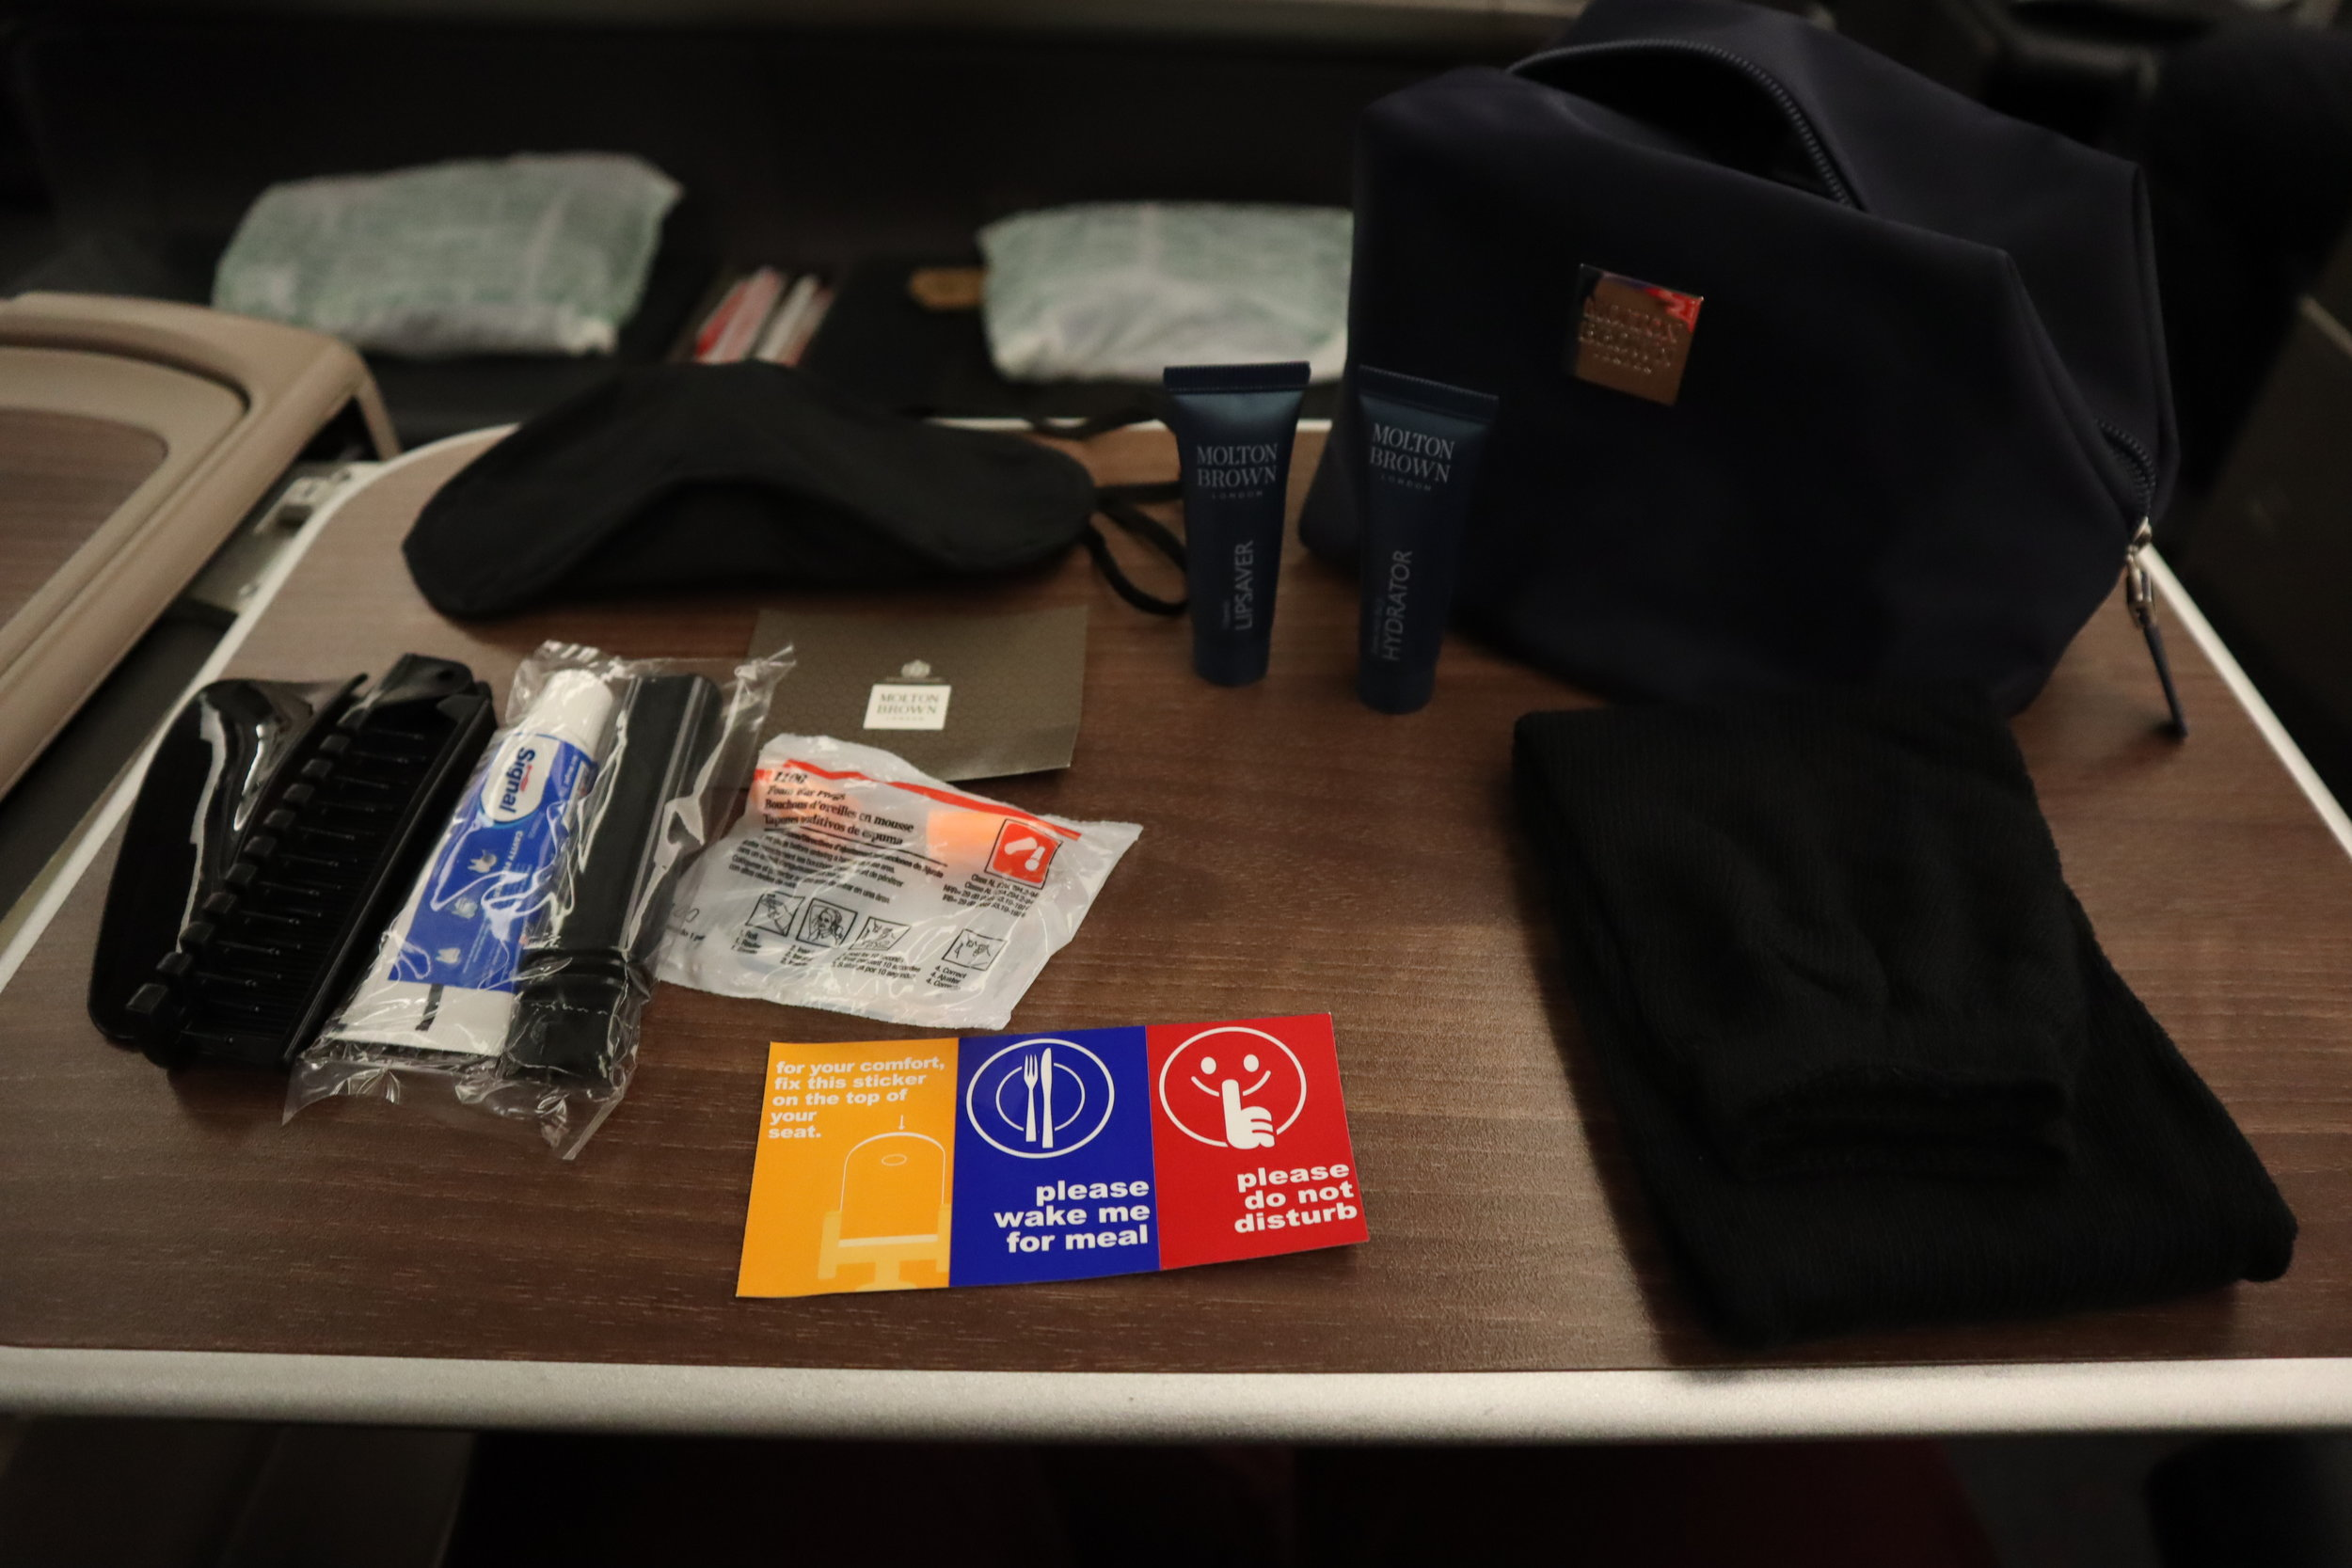 Turkish Airlines A330 business class – Amenity kit contents